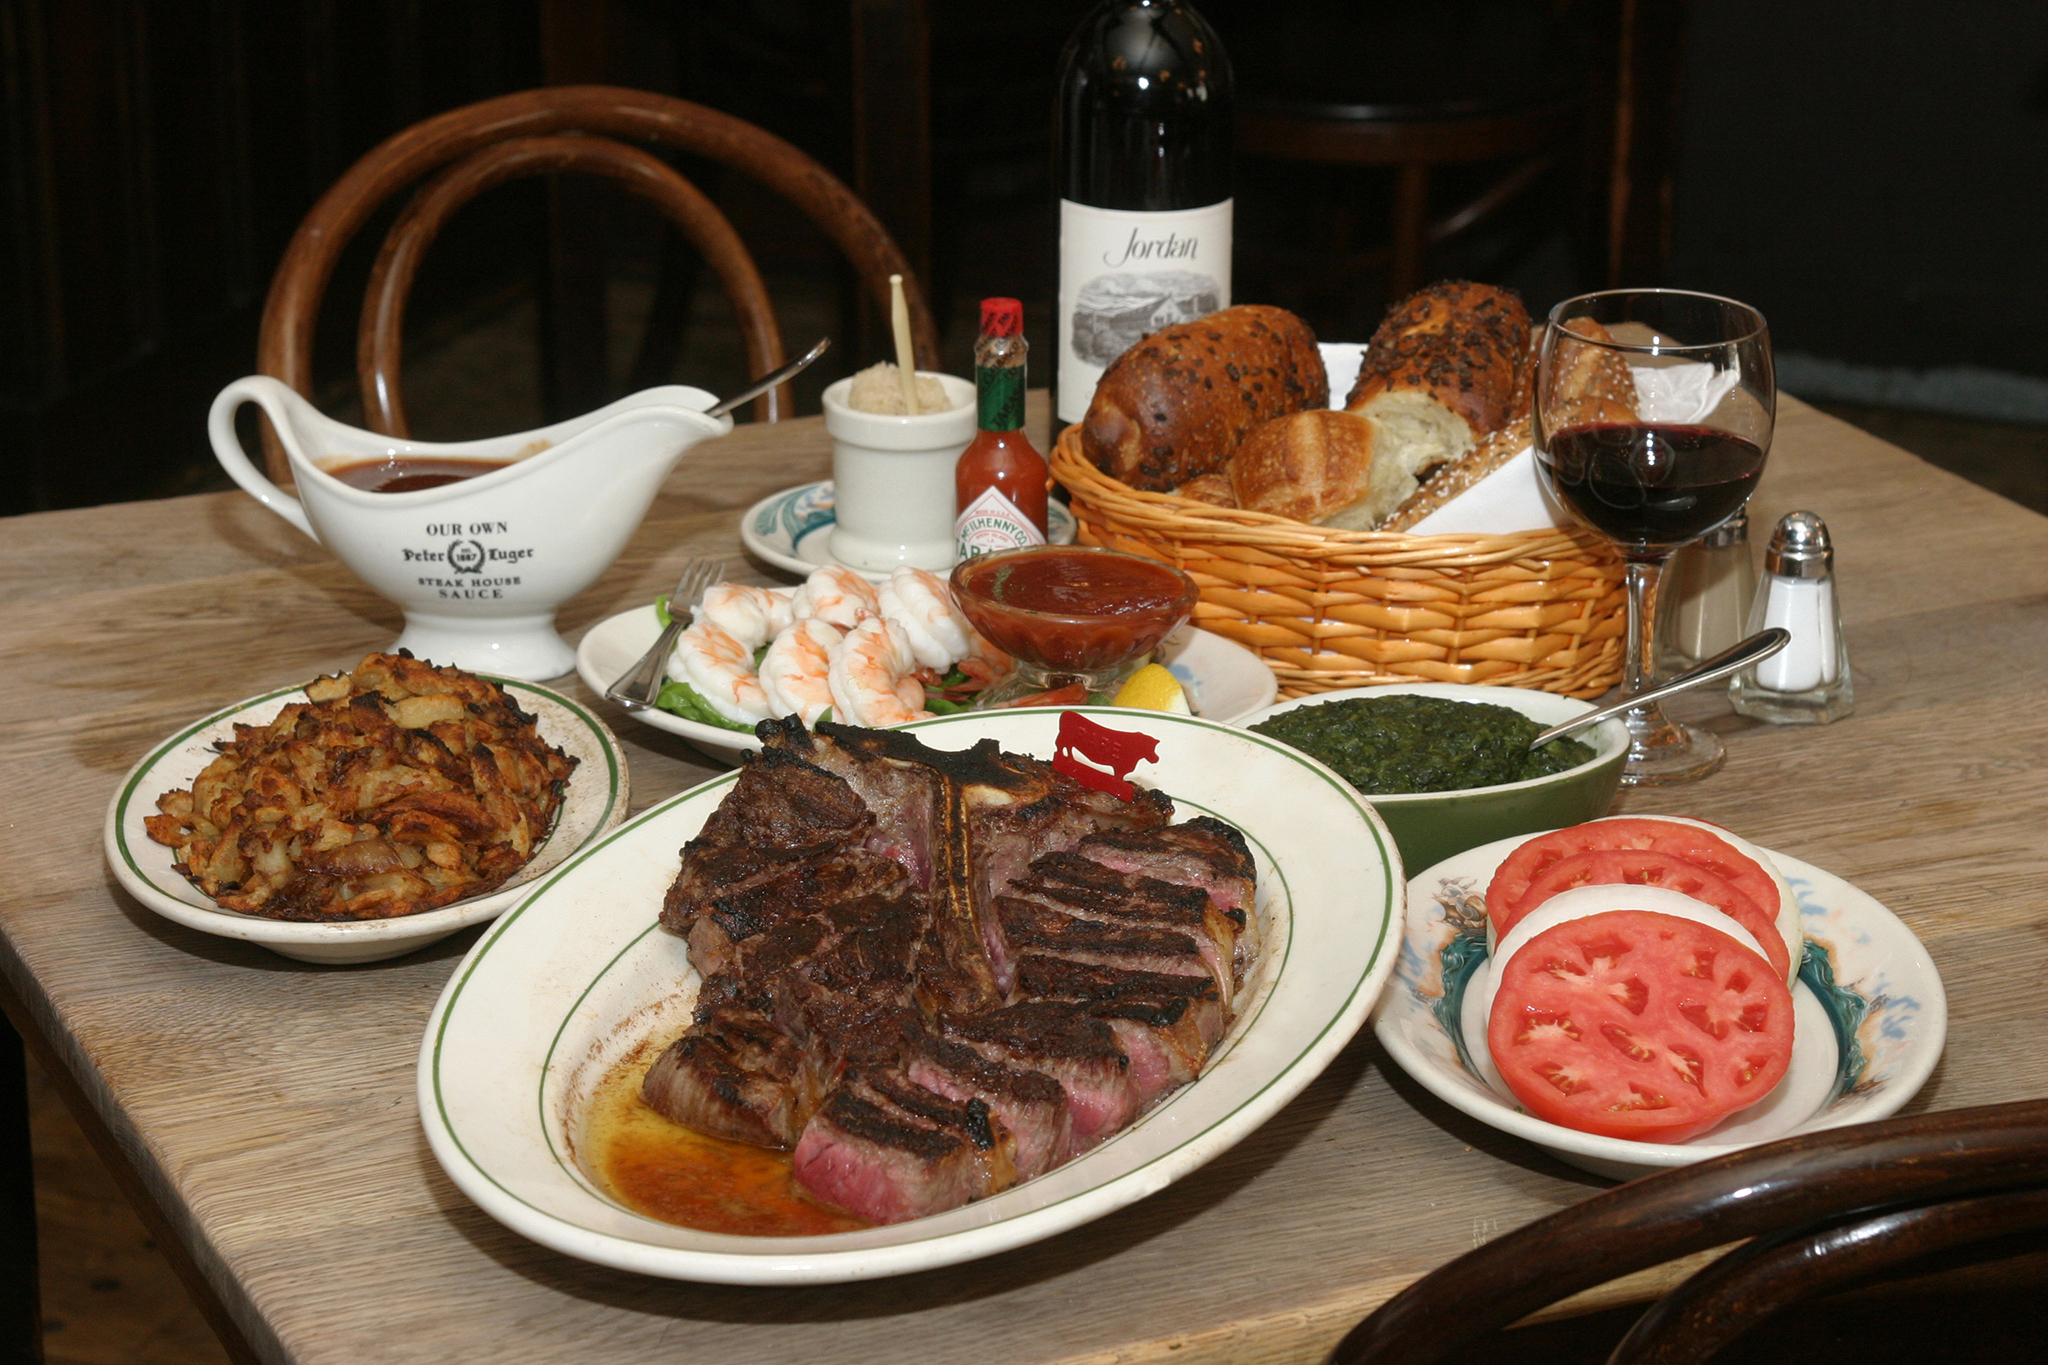 Iconic NYC steakhouse Peter Luger debuts delivery for the first time in 133-year history